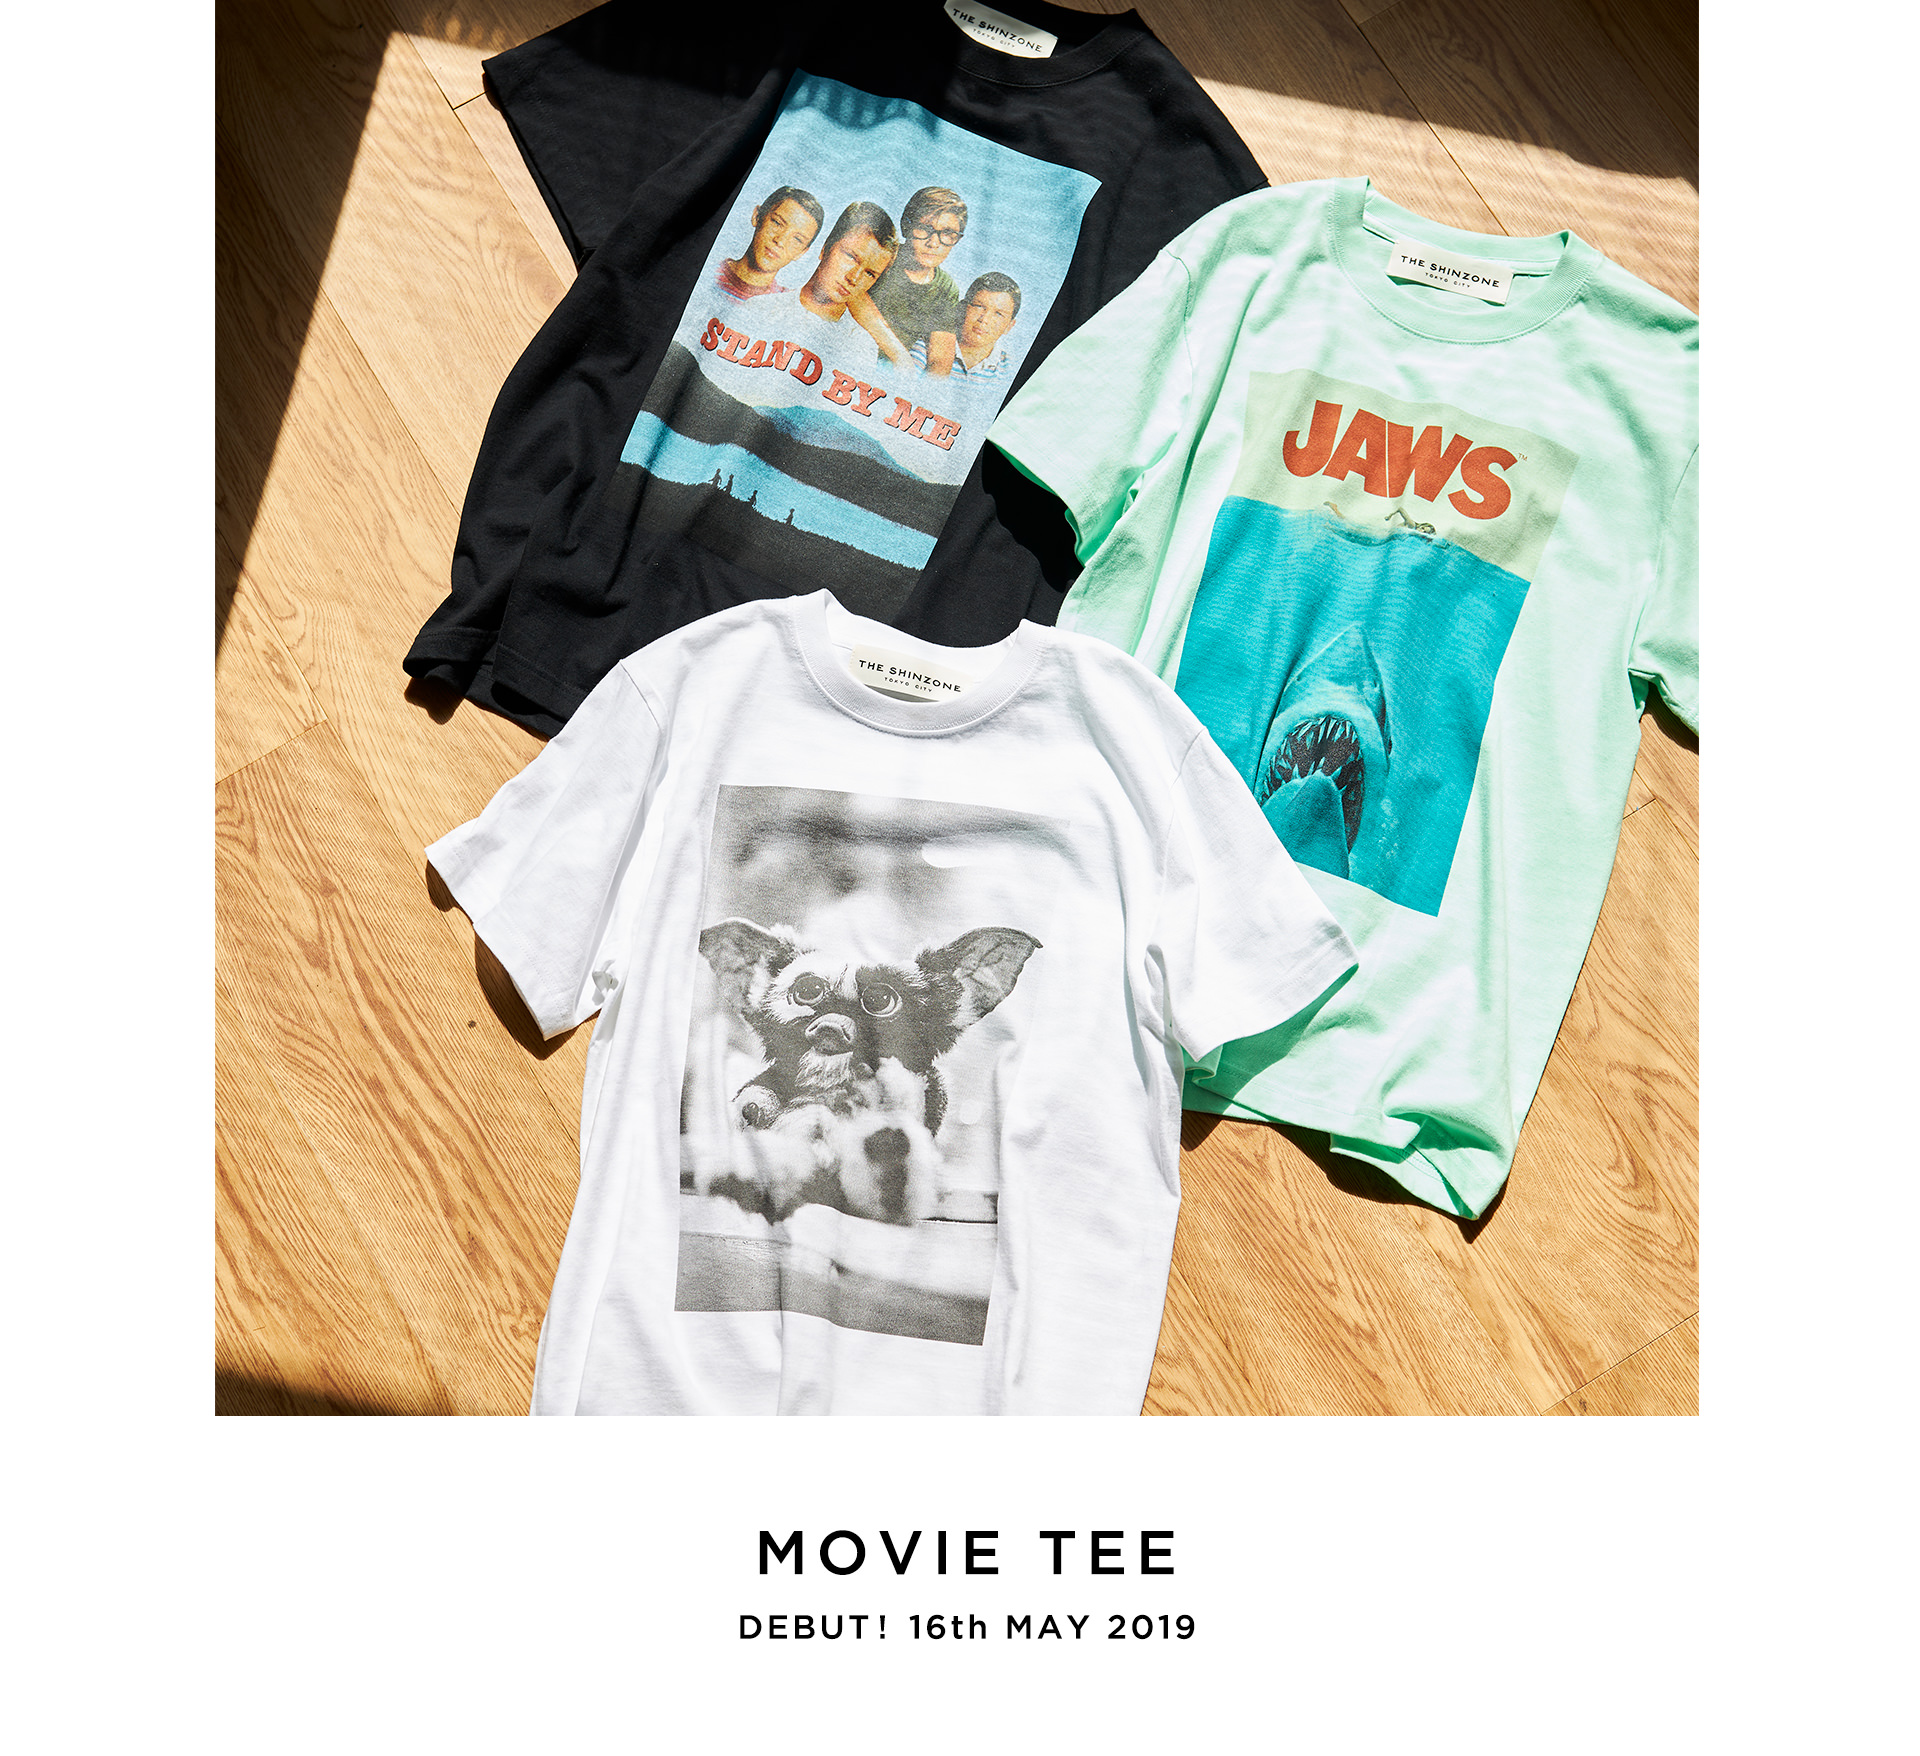 NEWS_MOVIE-TEE